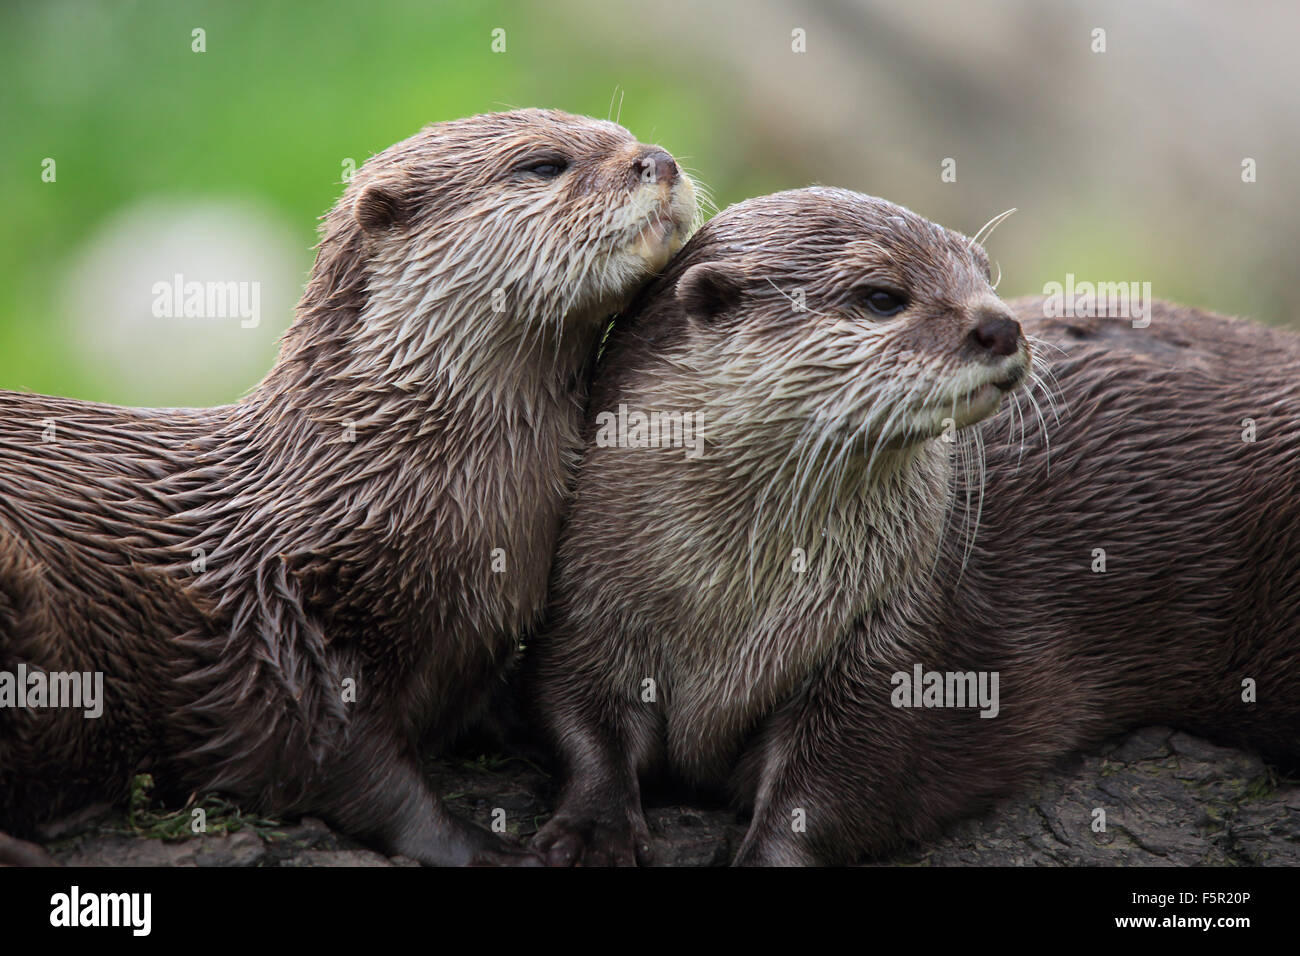 A couple of cuddly, Asian Short-Clawed Otters - Stock Image